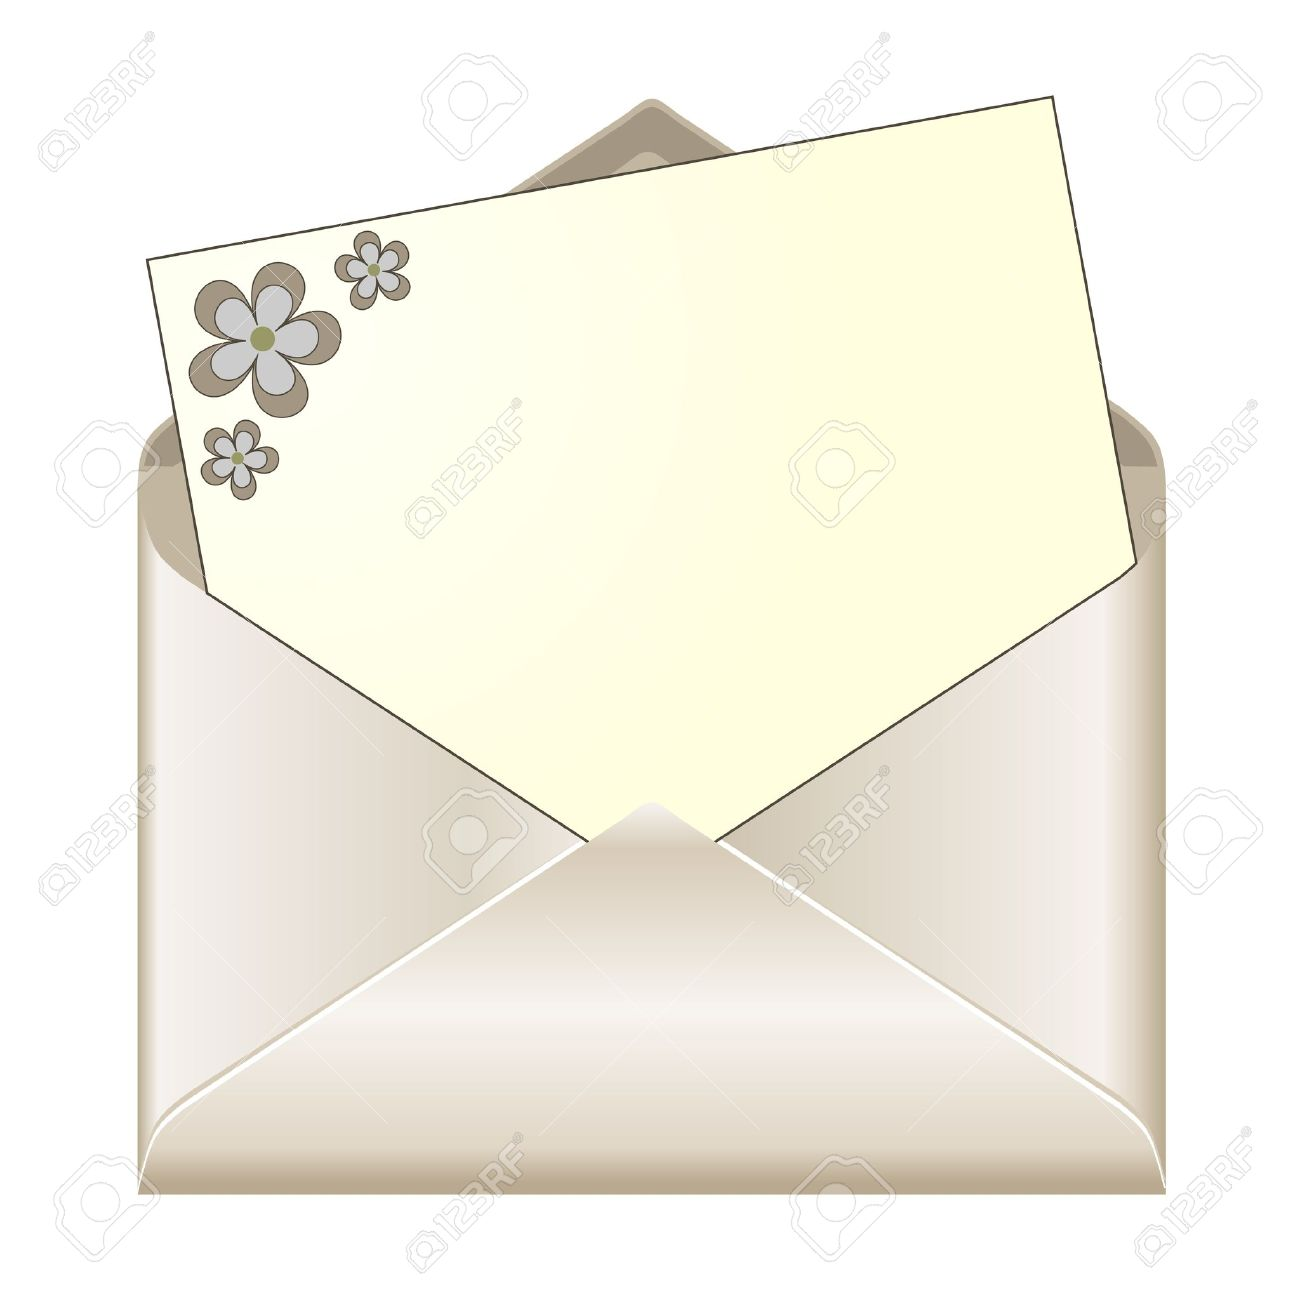 open envelope with floral stationery stock vector 17302124